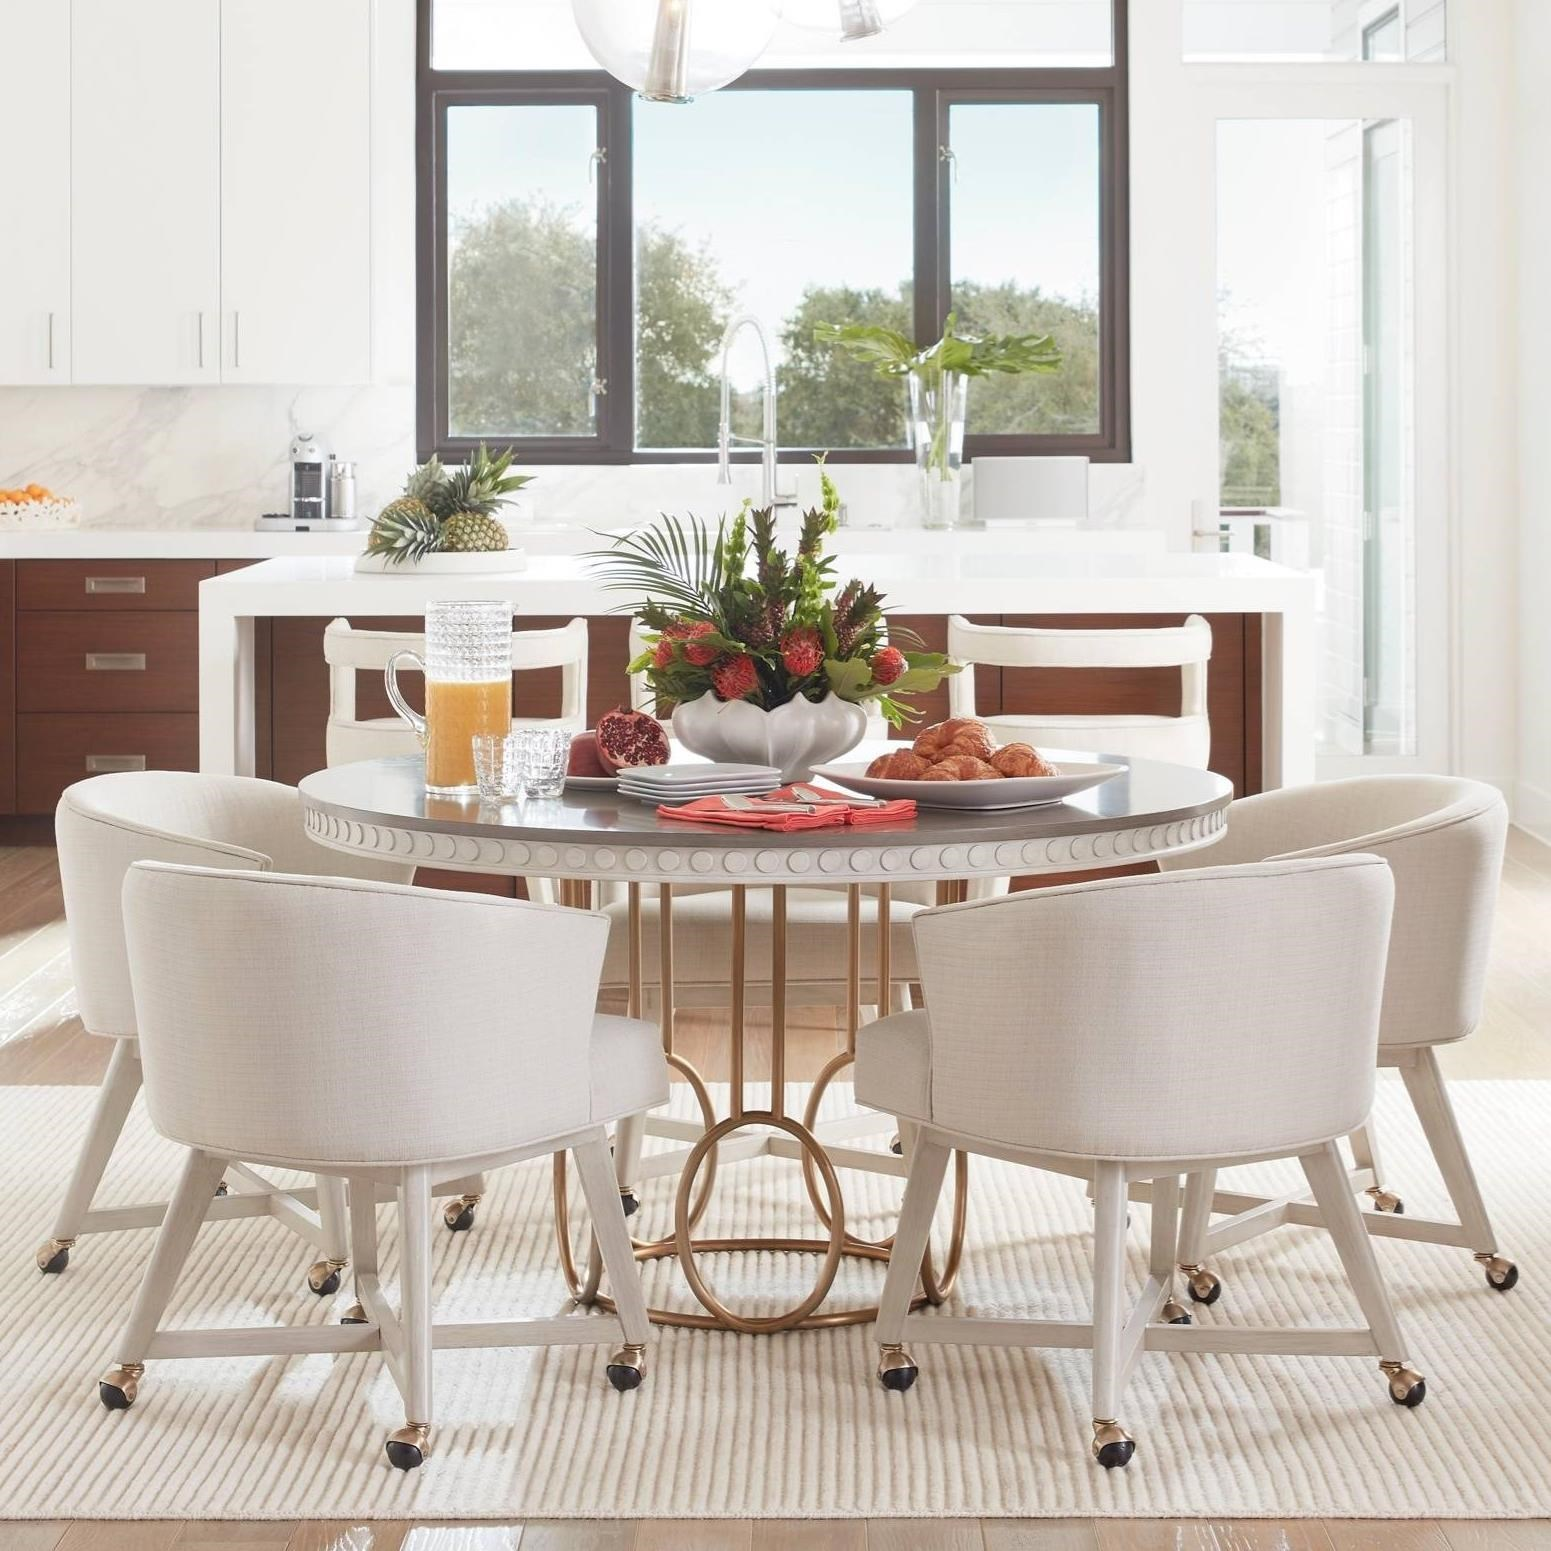 Stanley Furniture Coastal Living Oasis 5-Piece Venice Beach Table Set - Item Number: 527-51-30+4x69